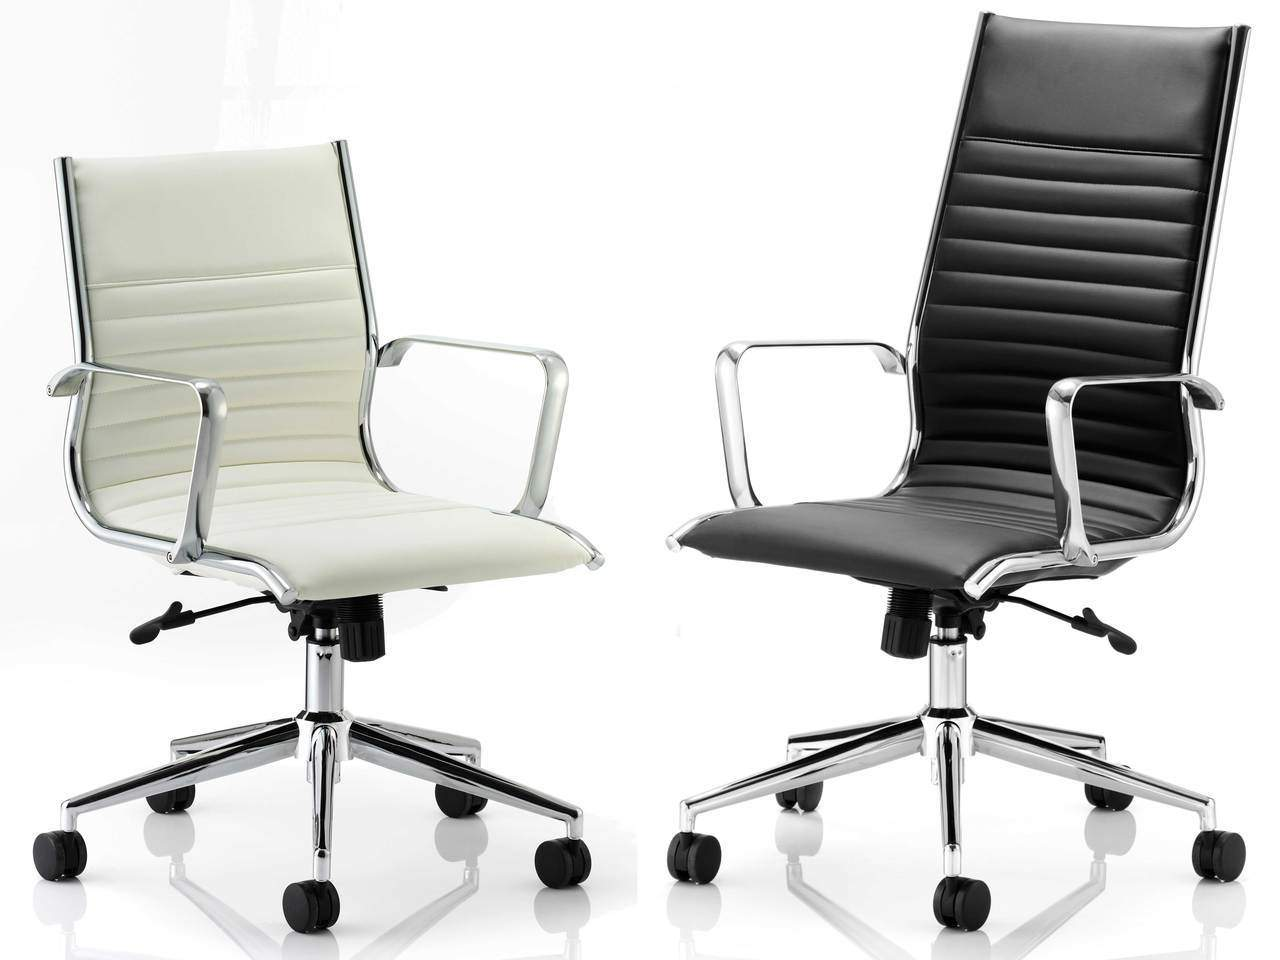 Ritz Medium and High Back Leather Executive Office Chair in Ivory or Black